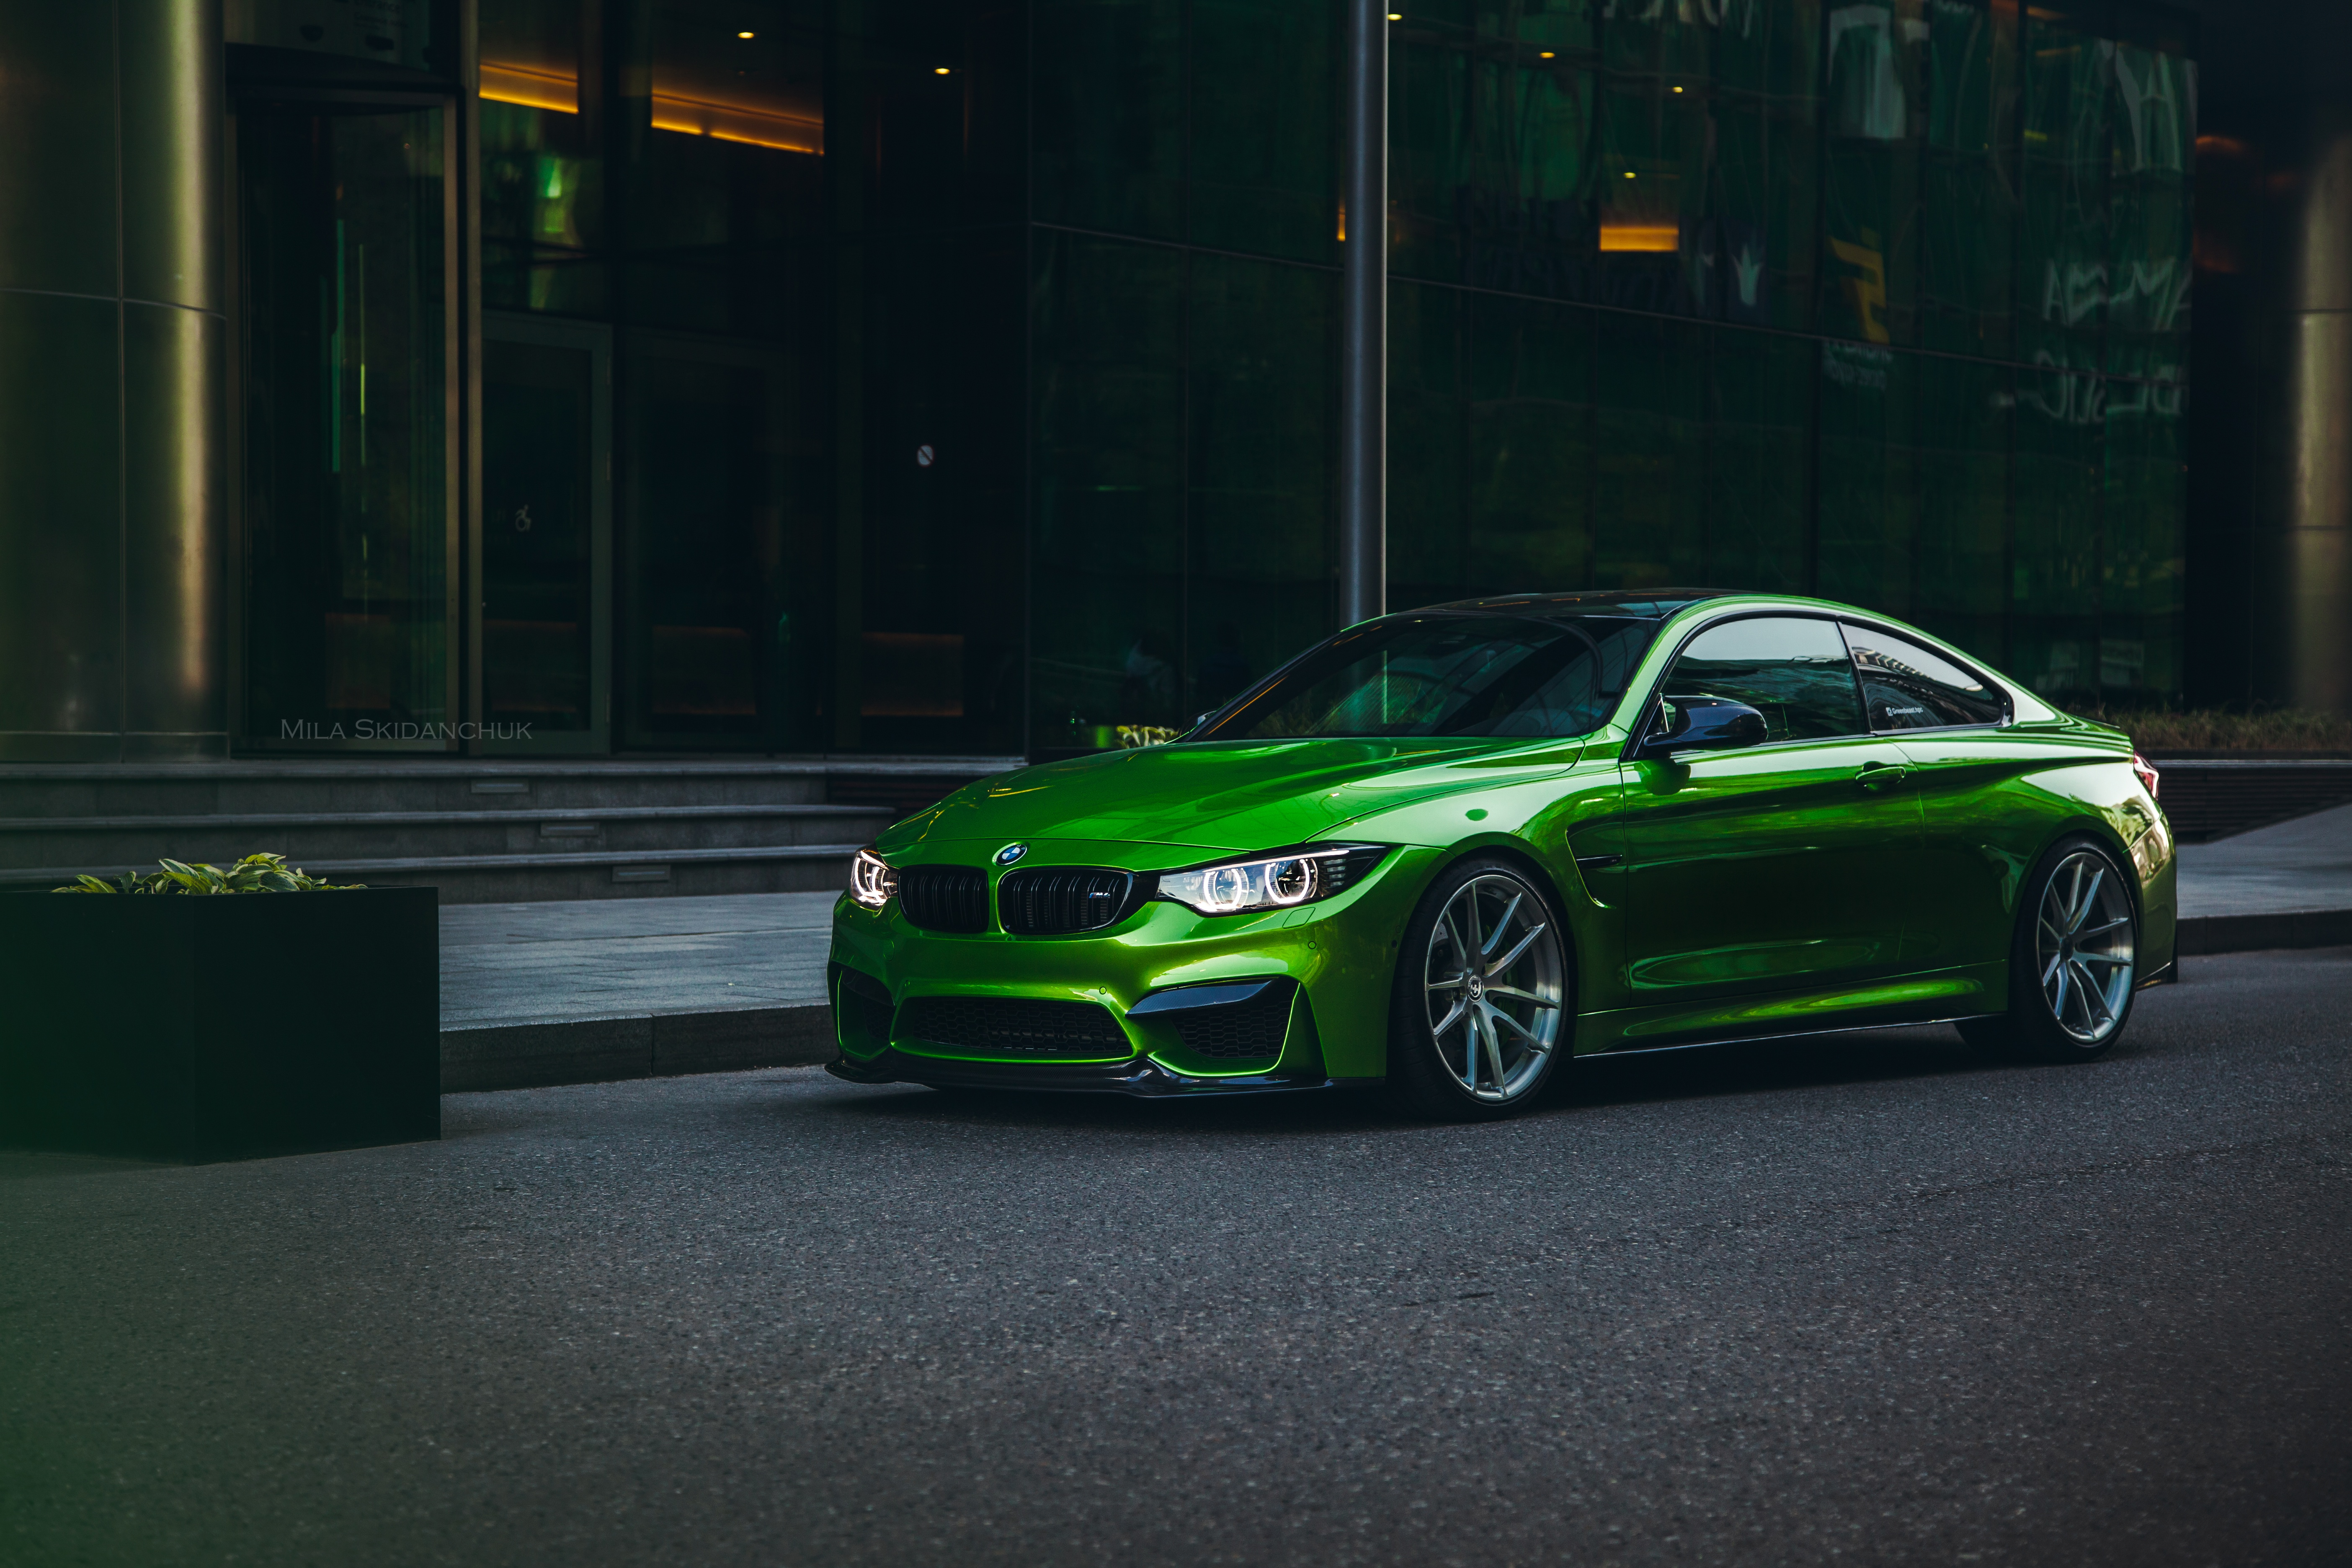 Bmw M4 Green 5k Hd Cars 4k Wallpapers Images Backgrounds Photos And Pictures